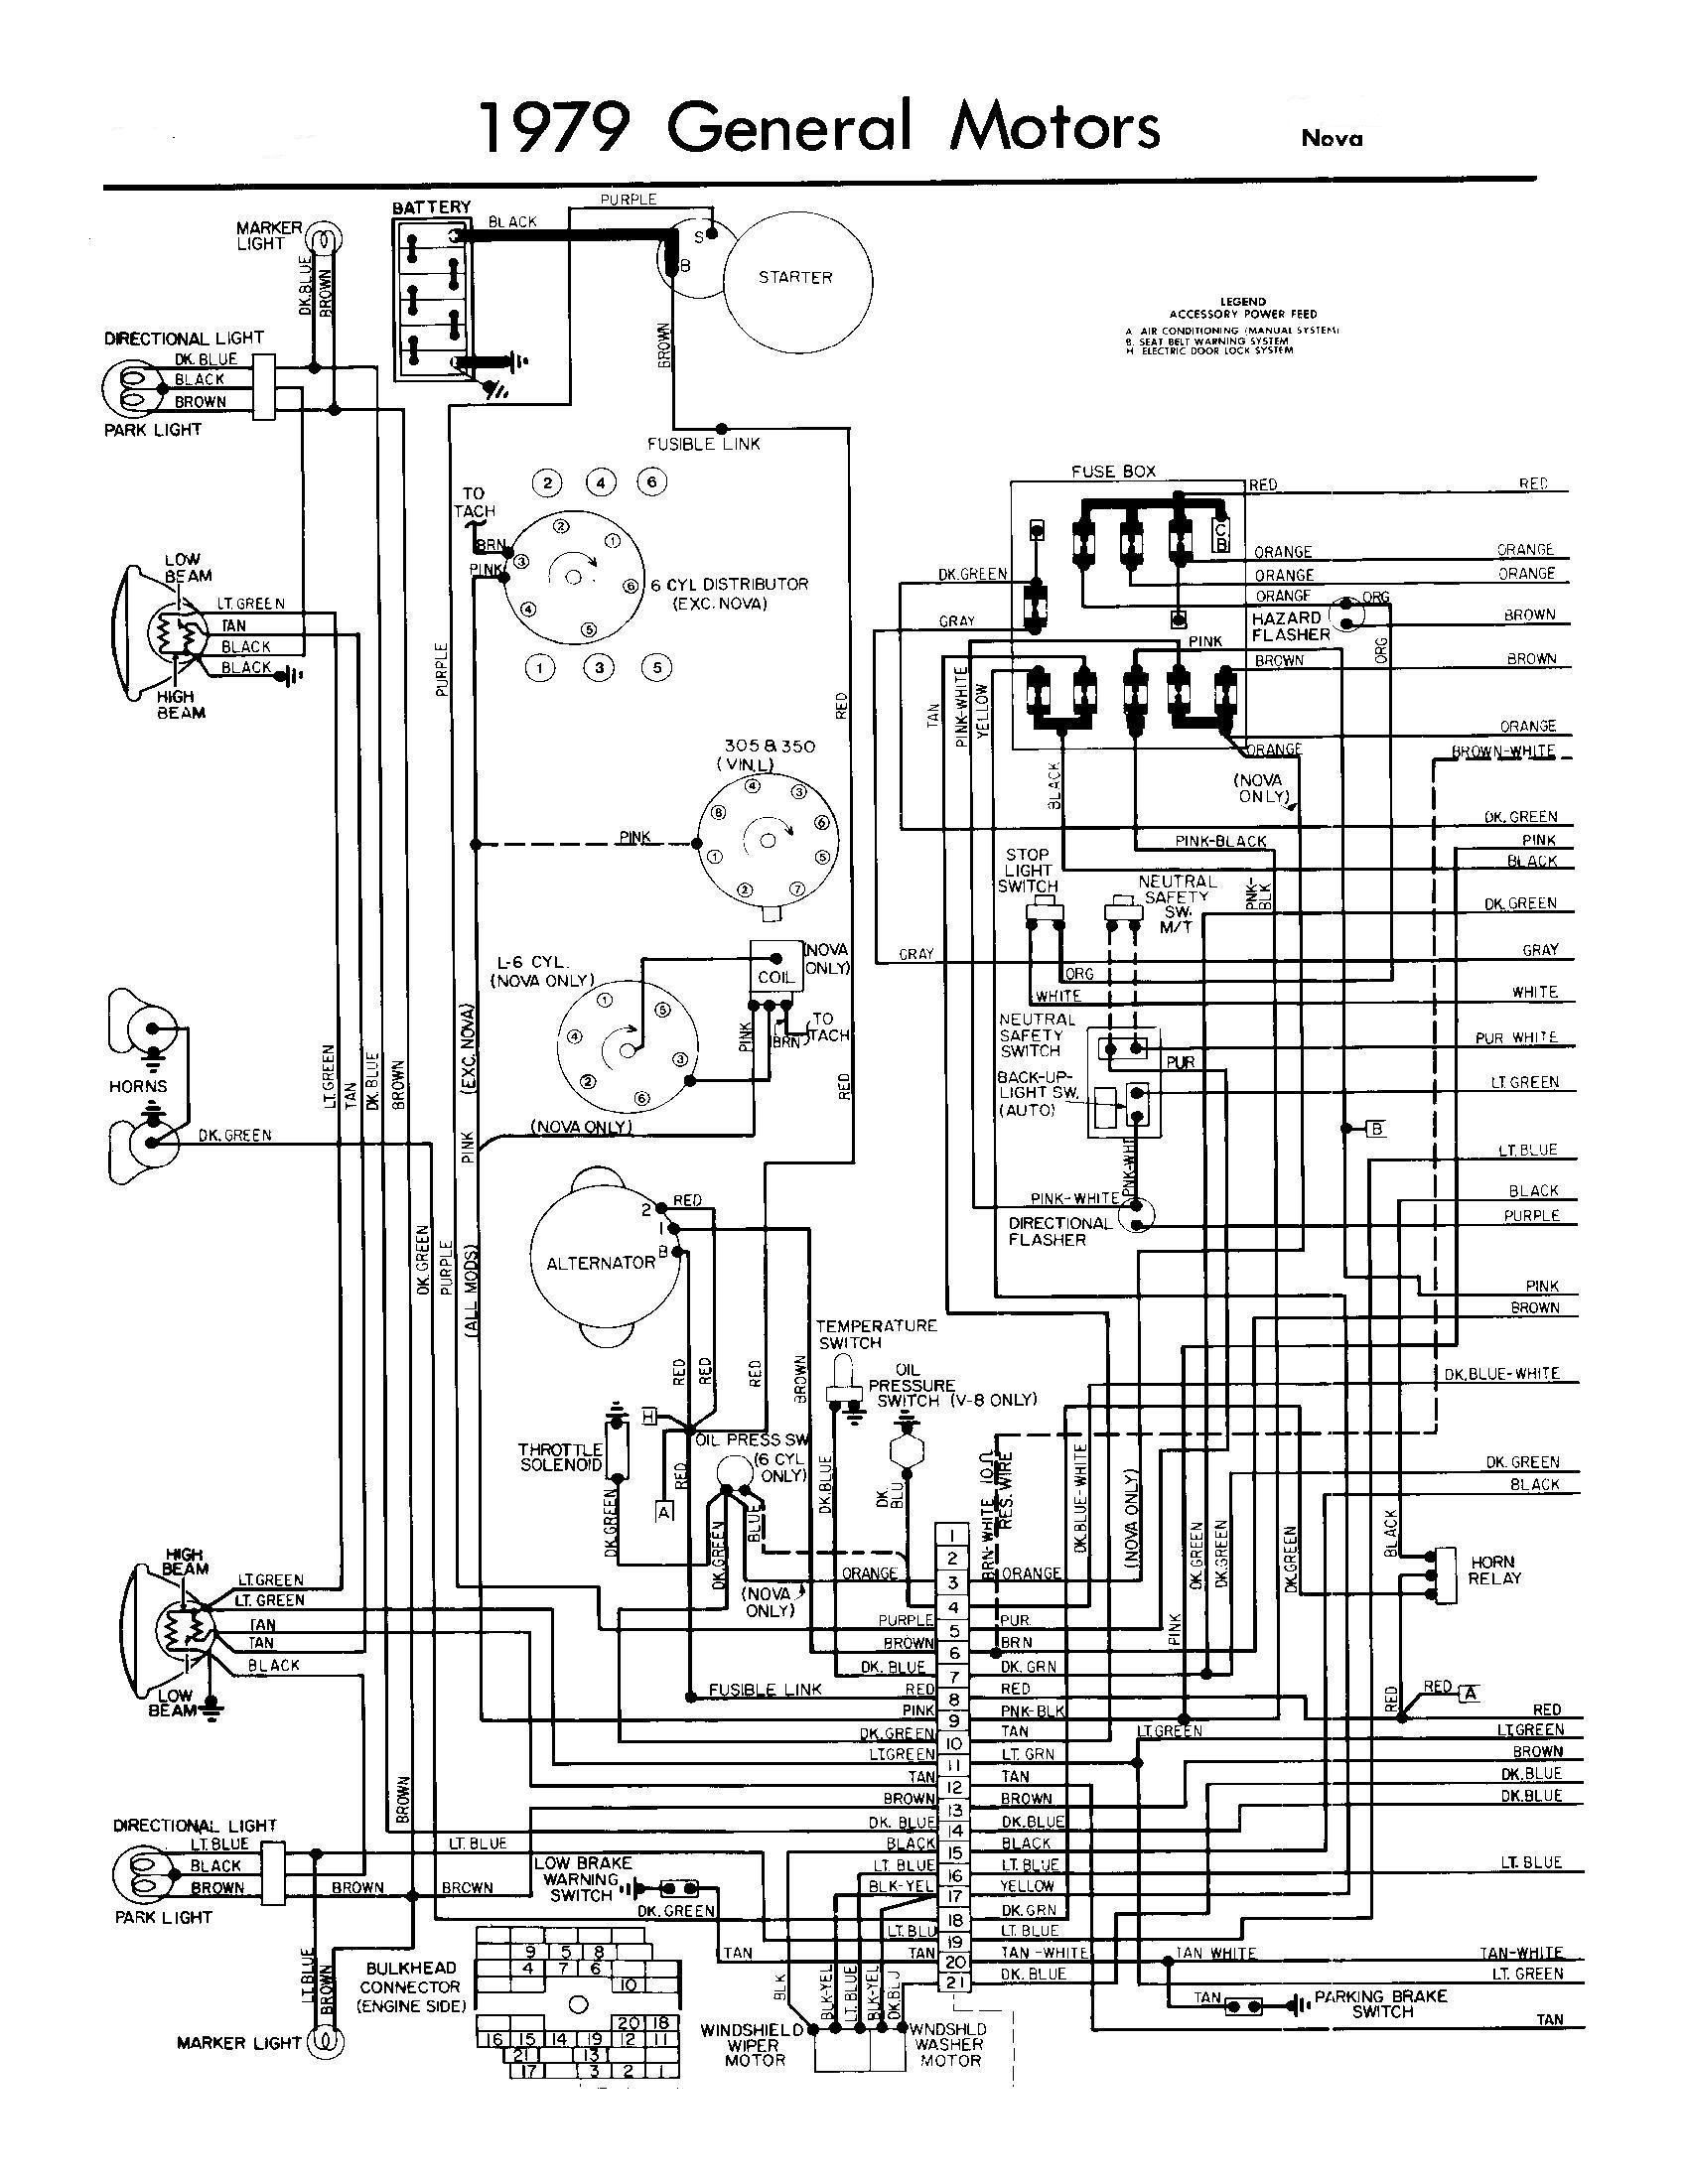 2006 chevy impala ac wiring diagram